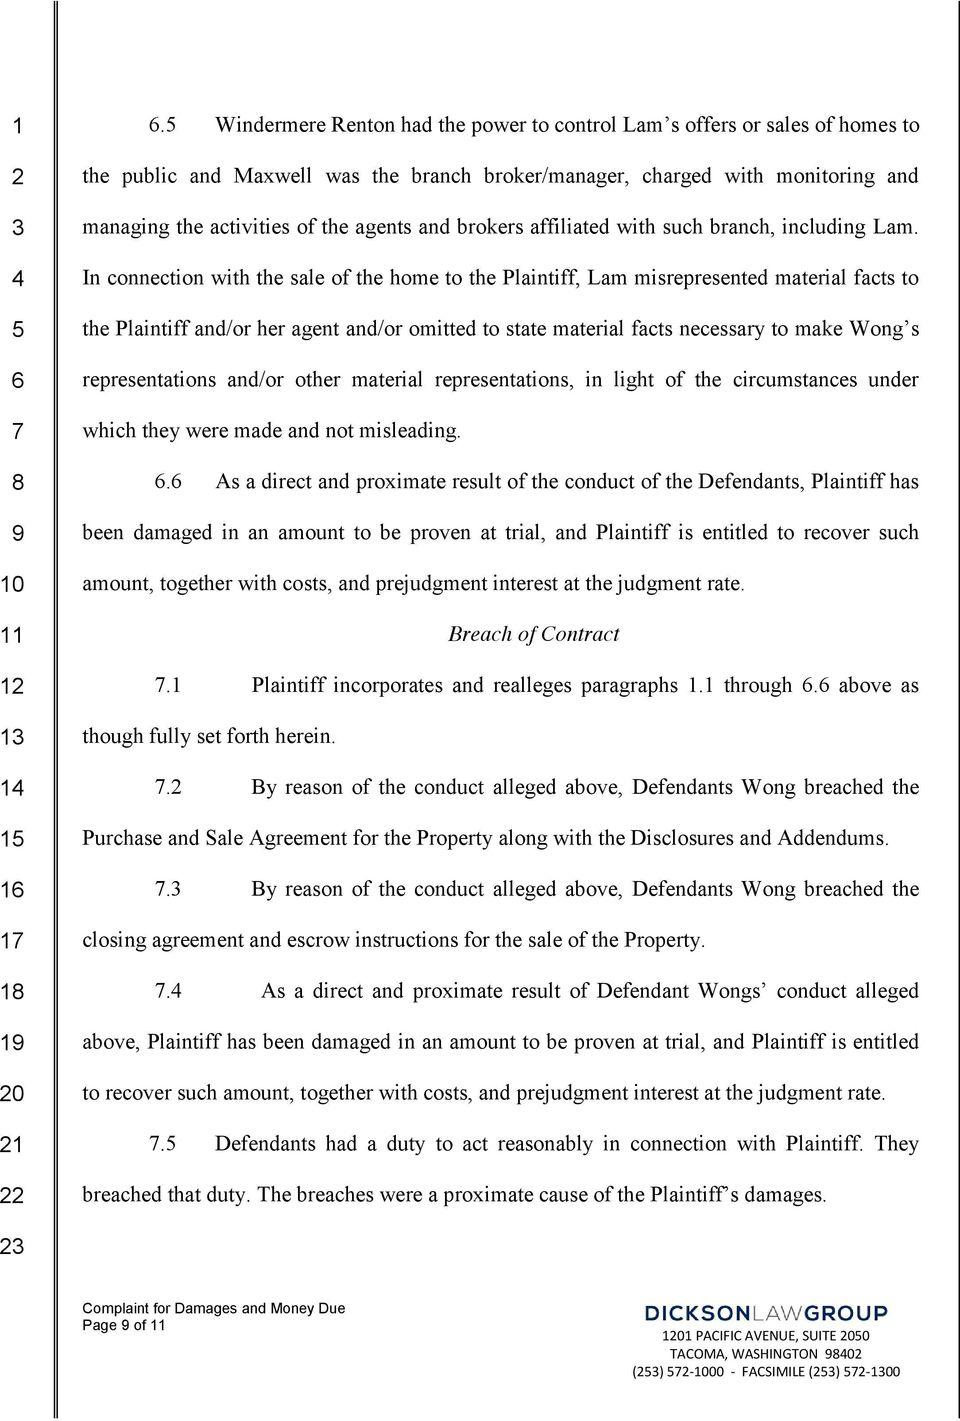 In connection with the sale of the home to the Plaintiff, Lam misrepresented material facts to the Plaintiff and/or her agent and/or omitted to state material facts necessary to make Wong s